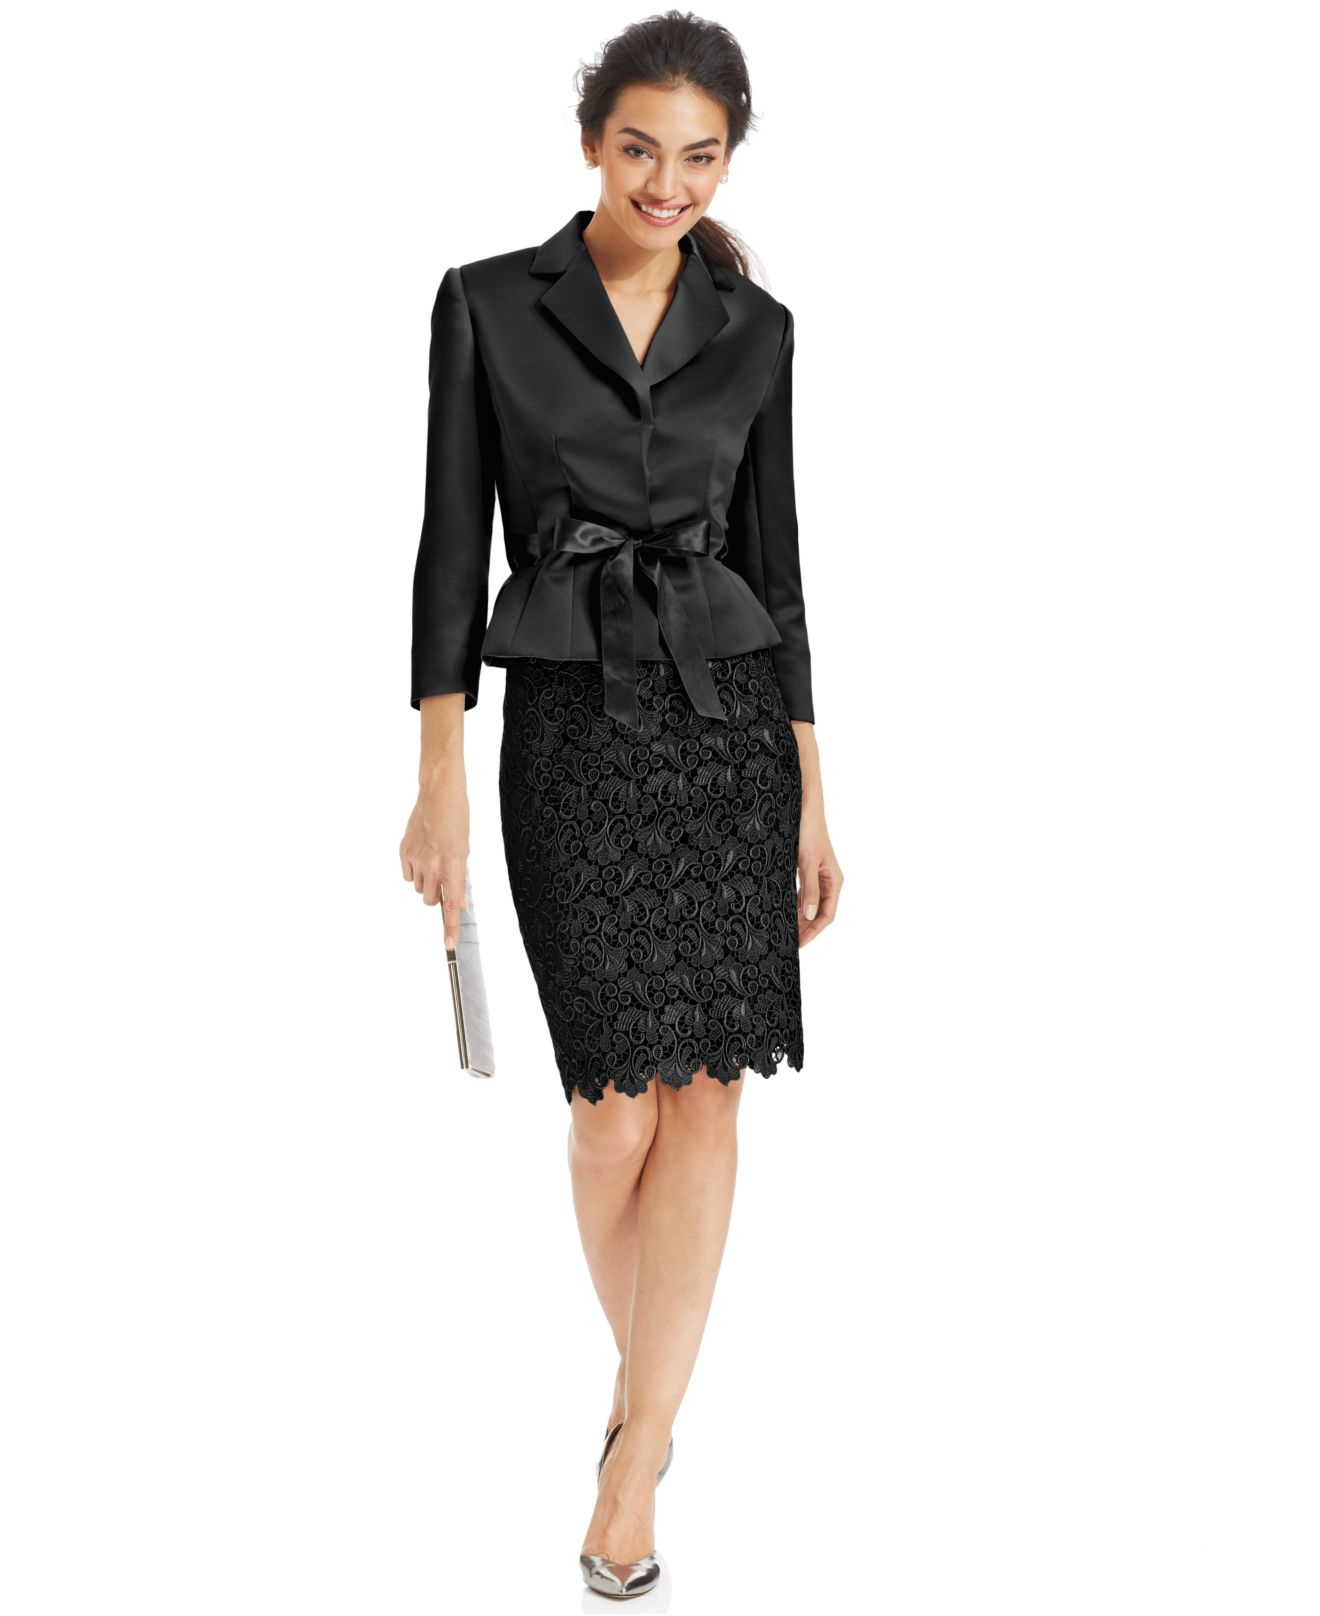 Wonderful Women Skirt Suits Blazer And Jacket Sets Fashion Ladies Business Suits